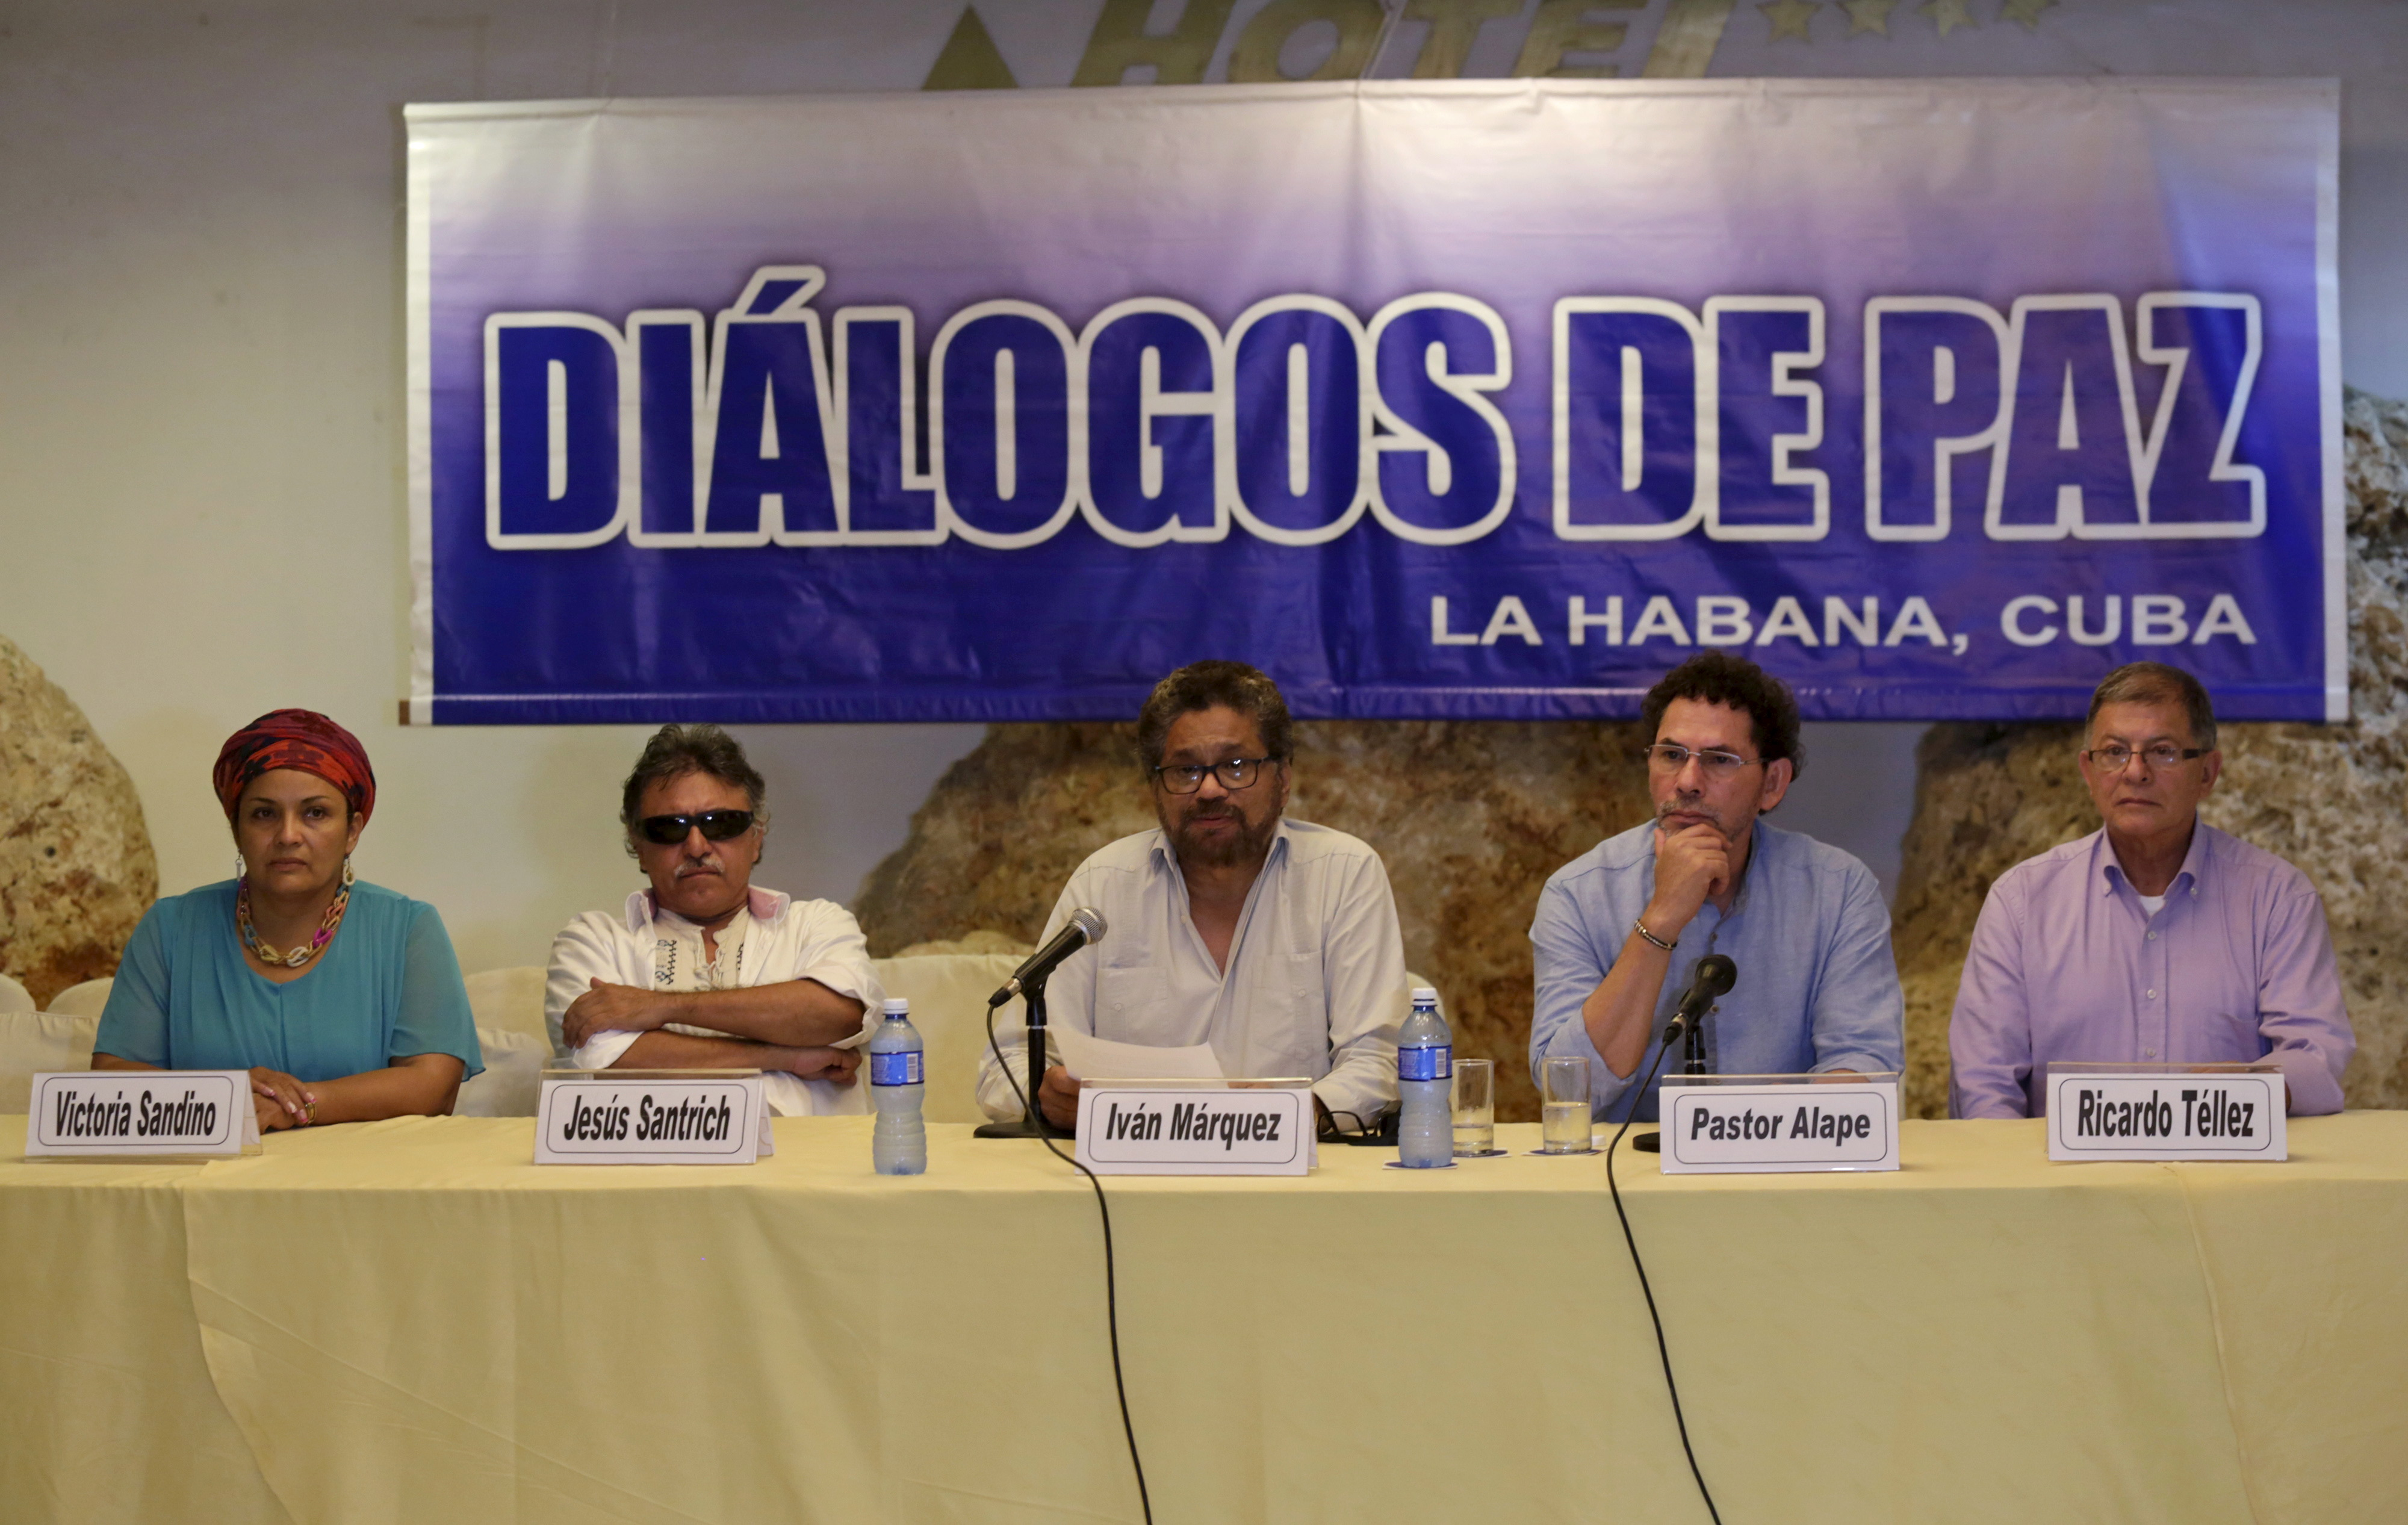 Revolutionary Armed Forces of Colombia (FARC) lead negotiator Iván Márquez, center, reads a document while flanked by fellow FARC members in Havana on Oct. 17, 2015